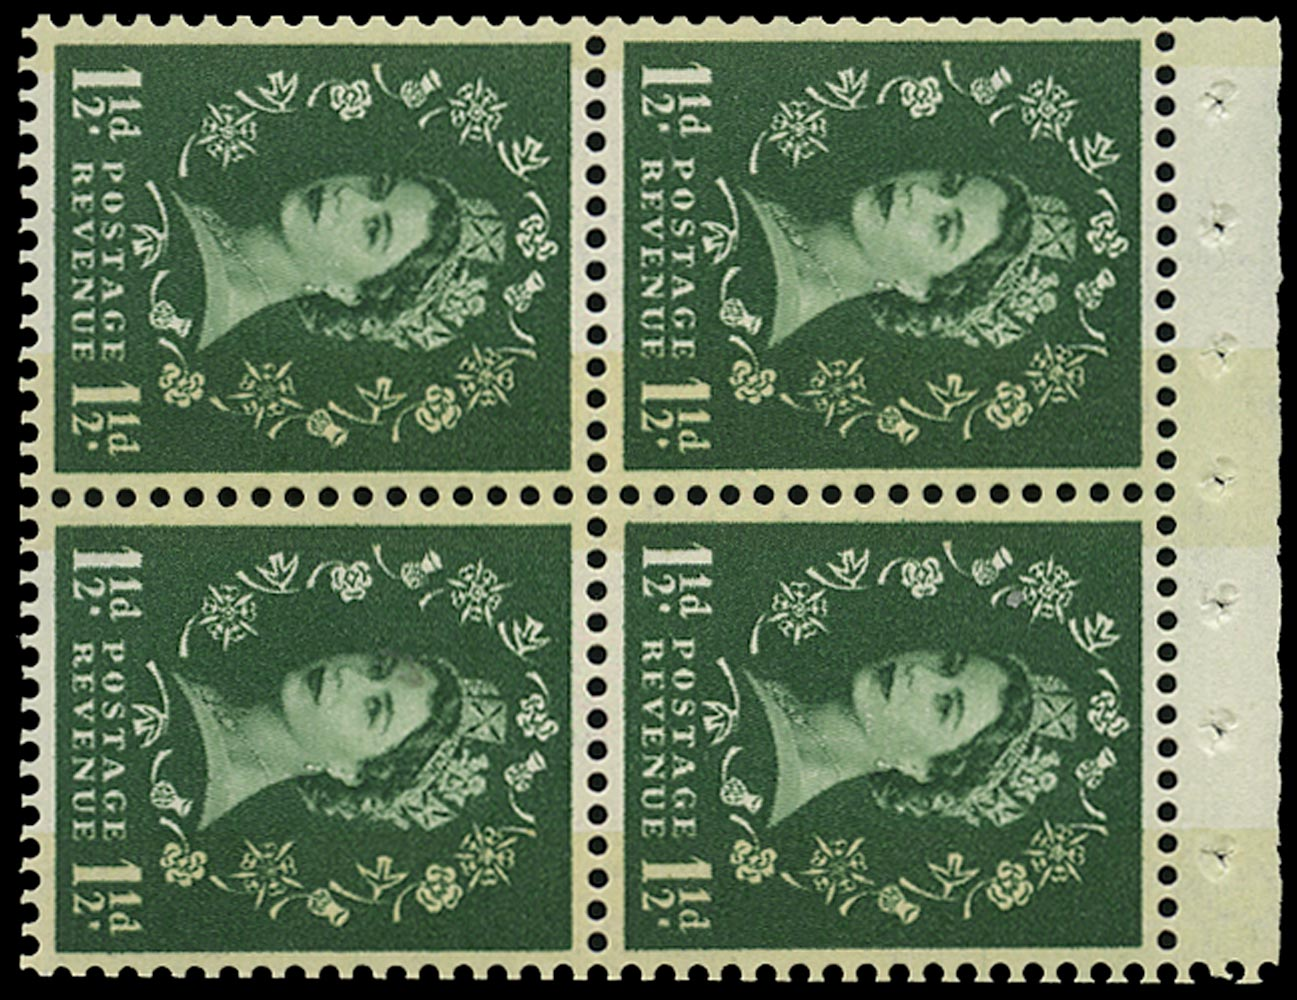 GB 1961  SG612mb Booklet pane - Wmk. Crowns to left